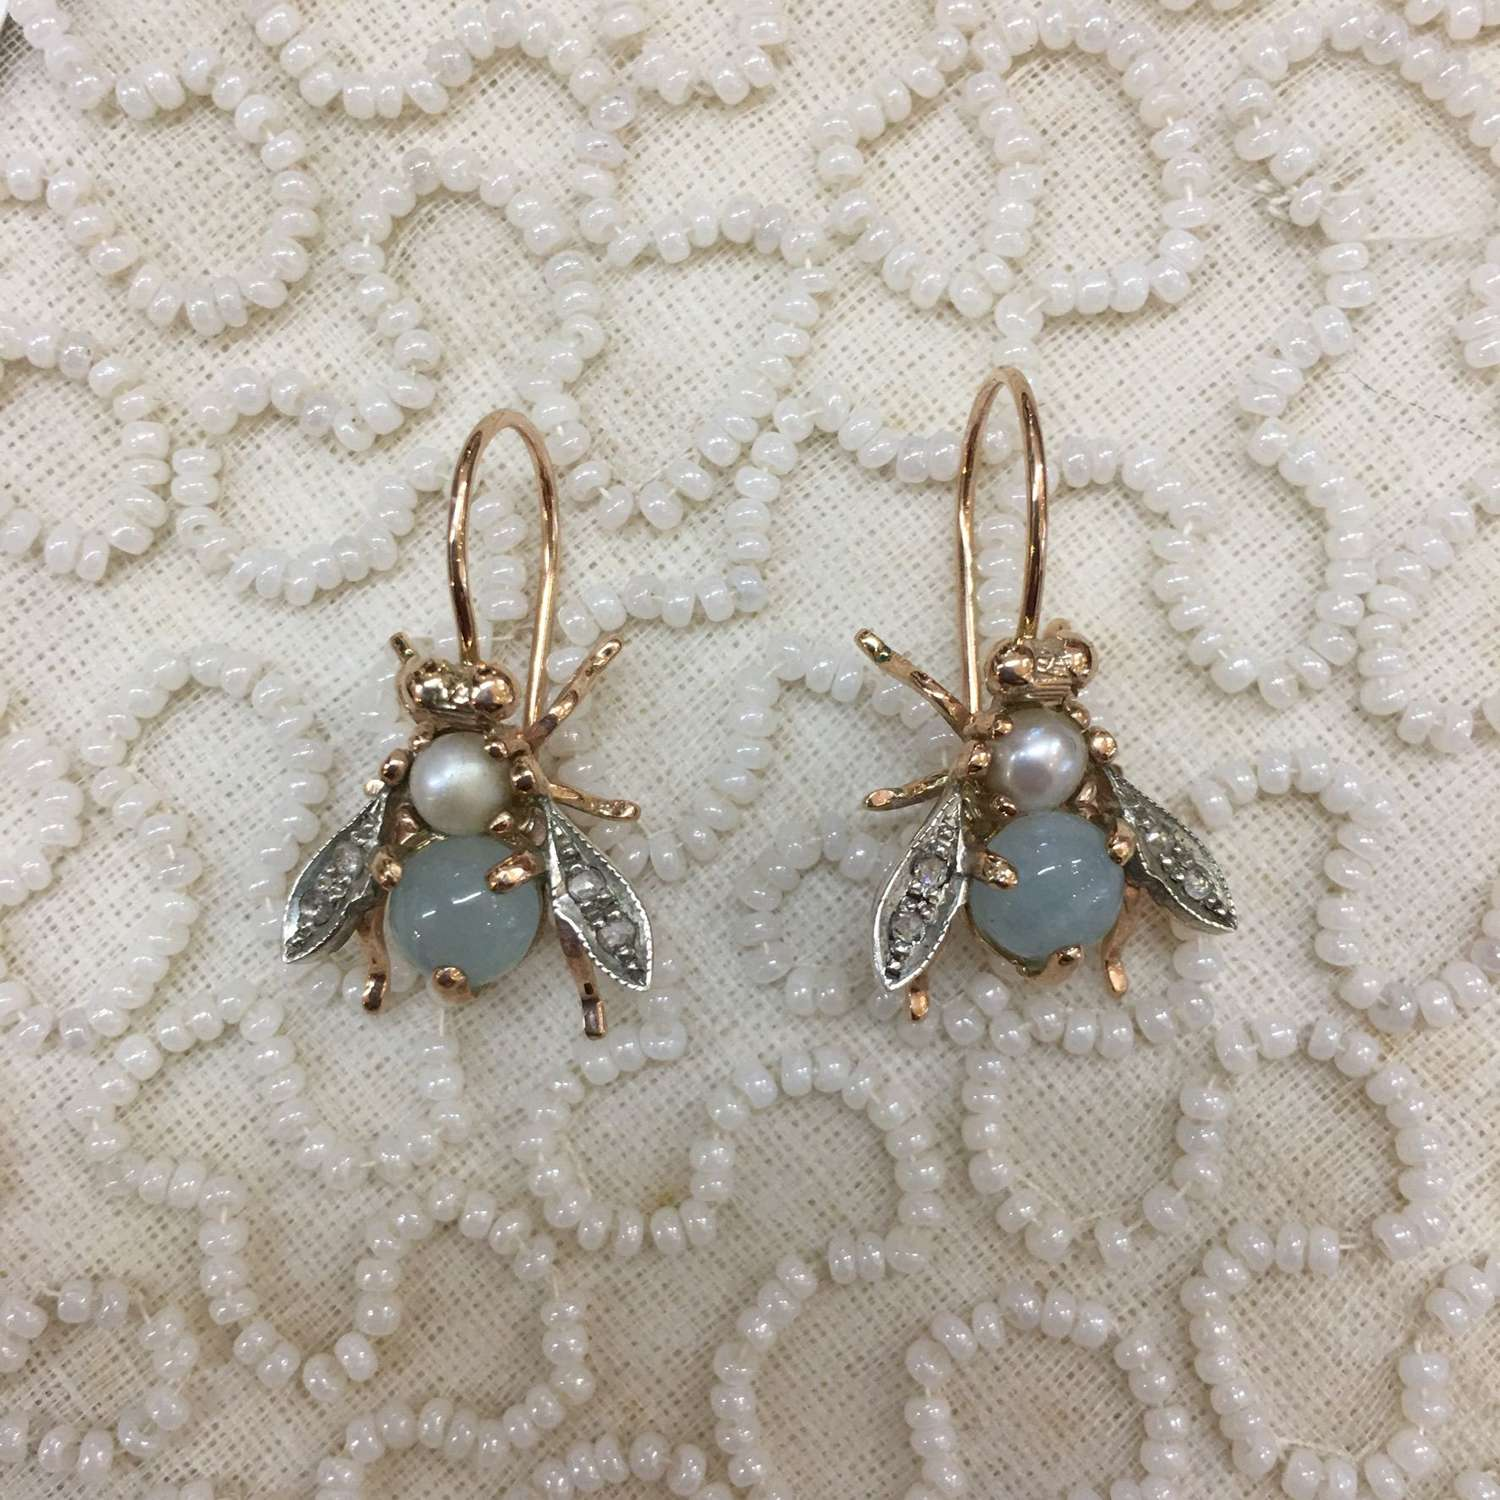 Rose gold bee earrings with aquamarine, pearls and diamonds